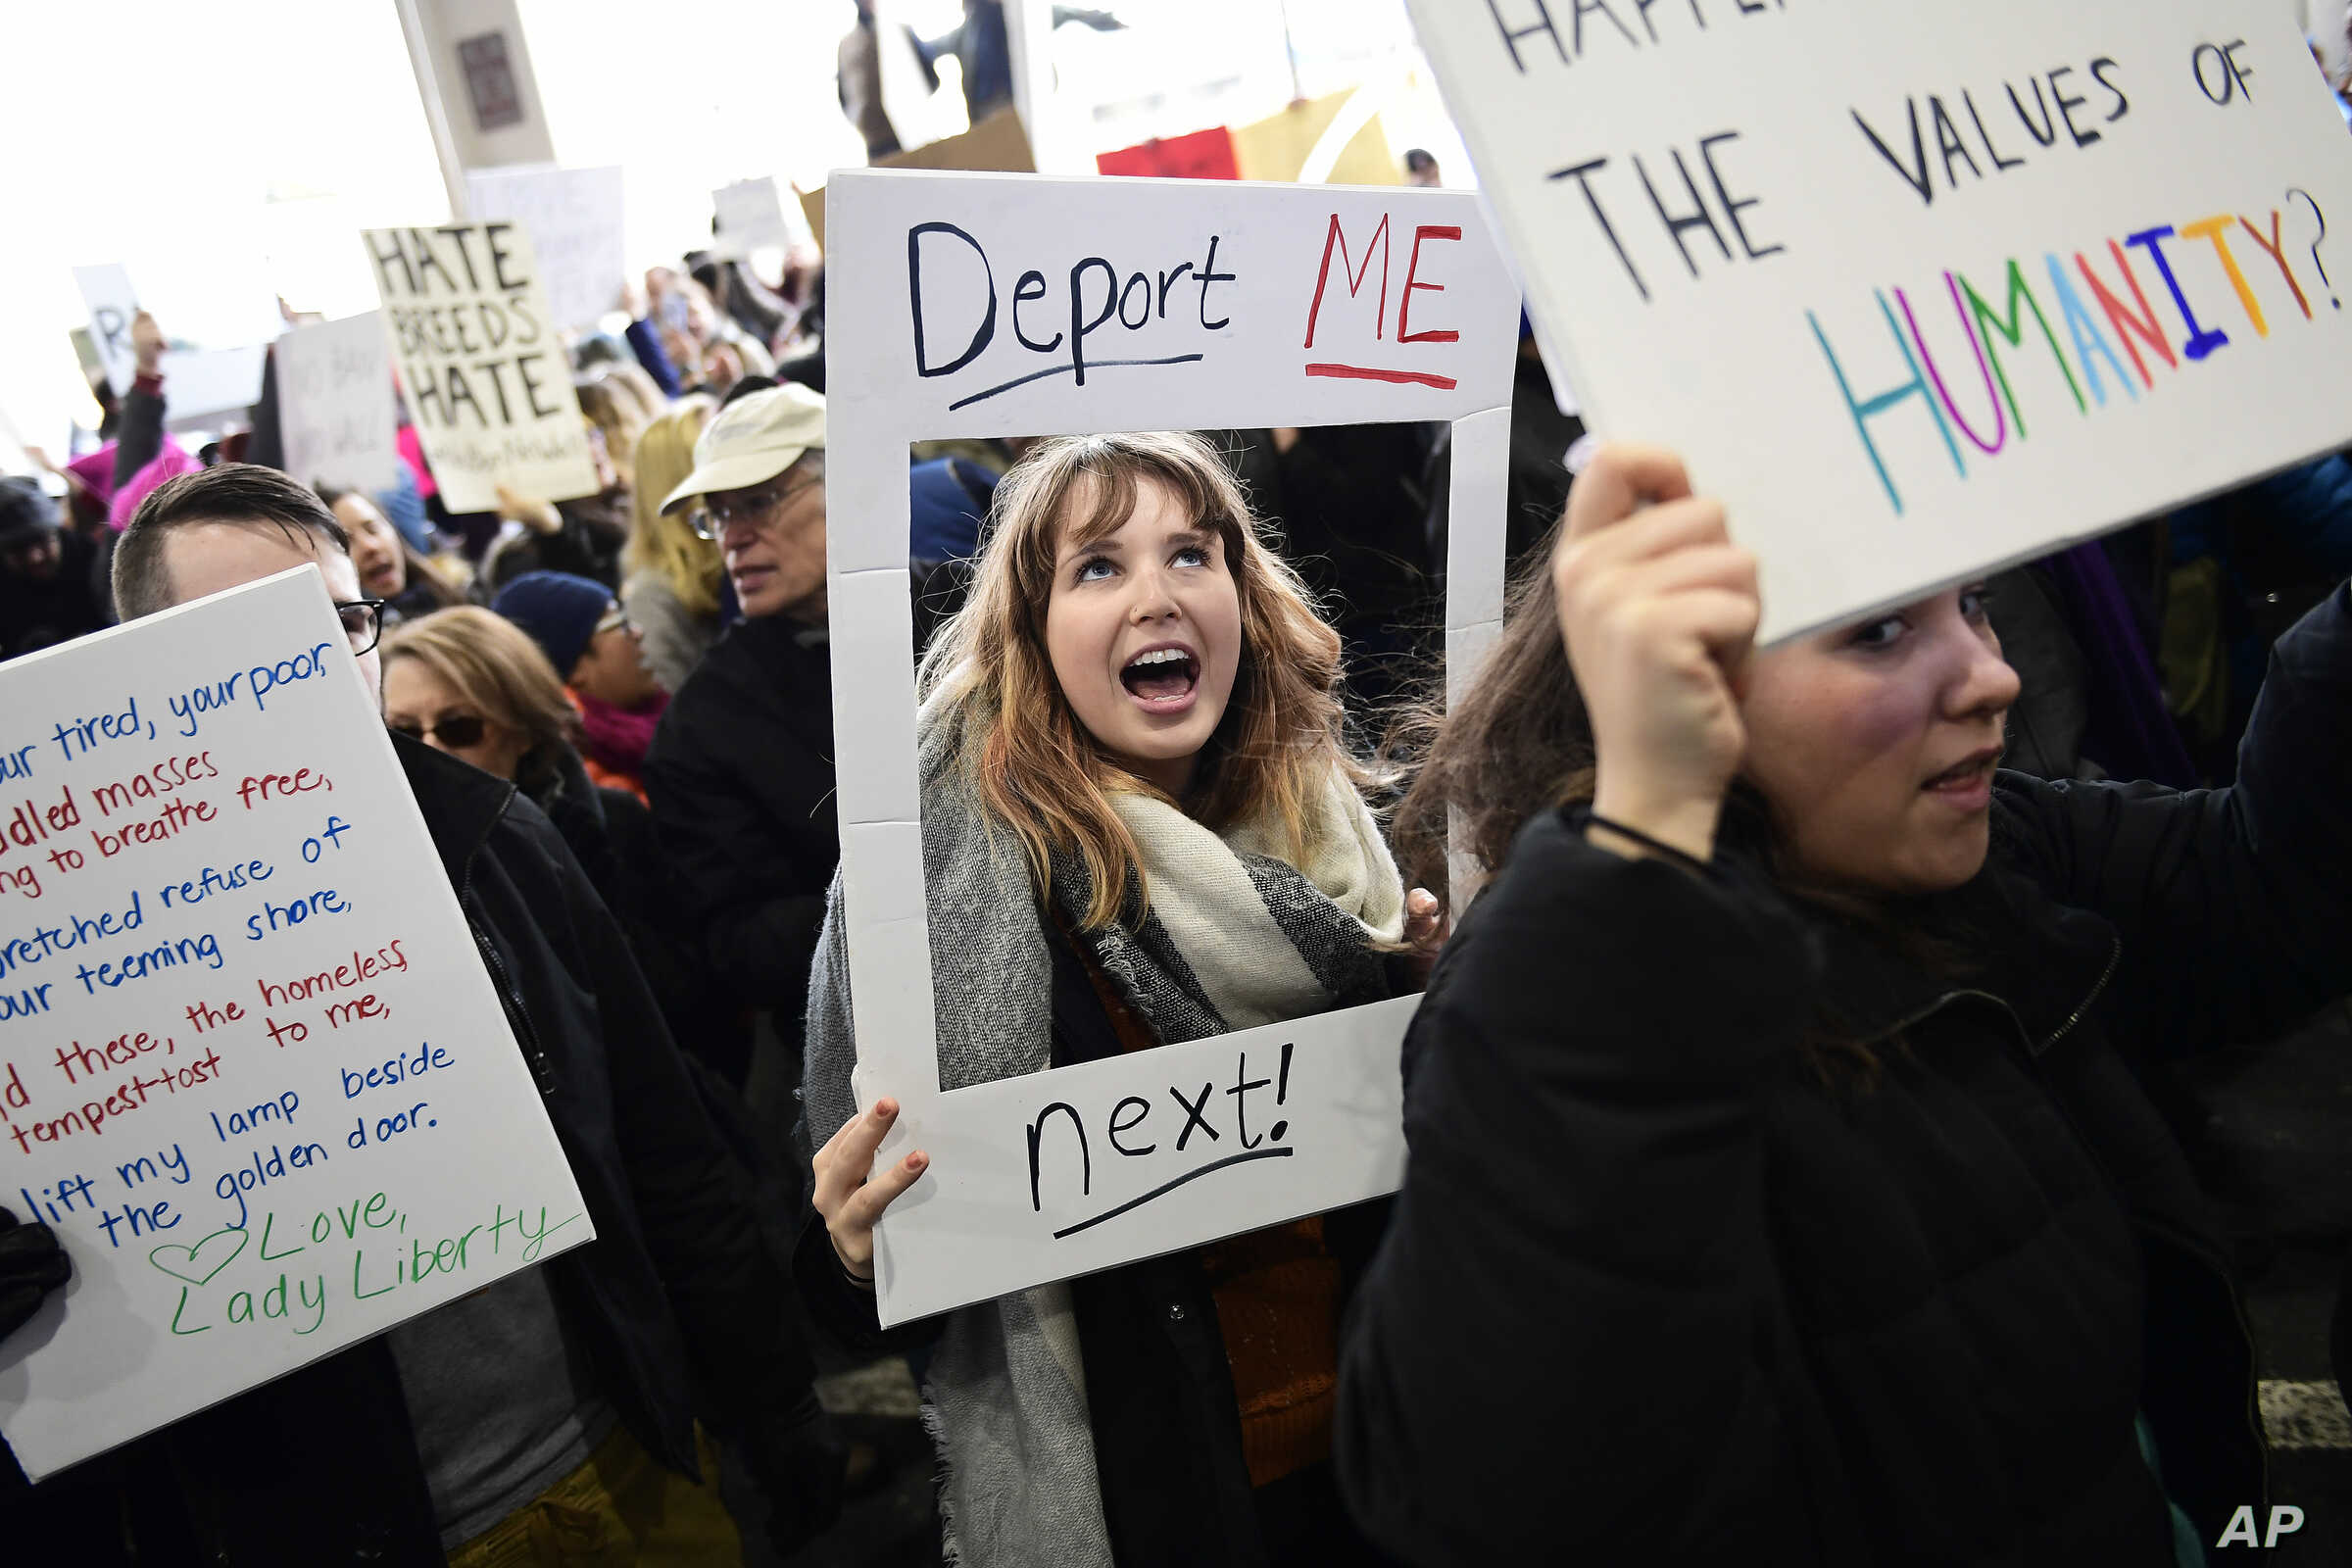 Madison Gray, a Temple University student, holds up her sign during a protest against President Donald Trump's executive order banning travel to the U.S. by citizens of Iraq, Syria, Iran, Sudan, Libya, Somalia or Yemen, Sunday, Jan. 29, 2017, at Phil...